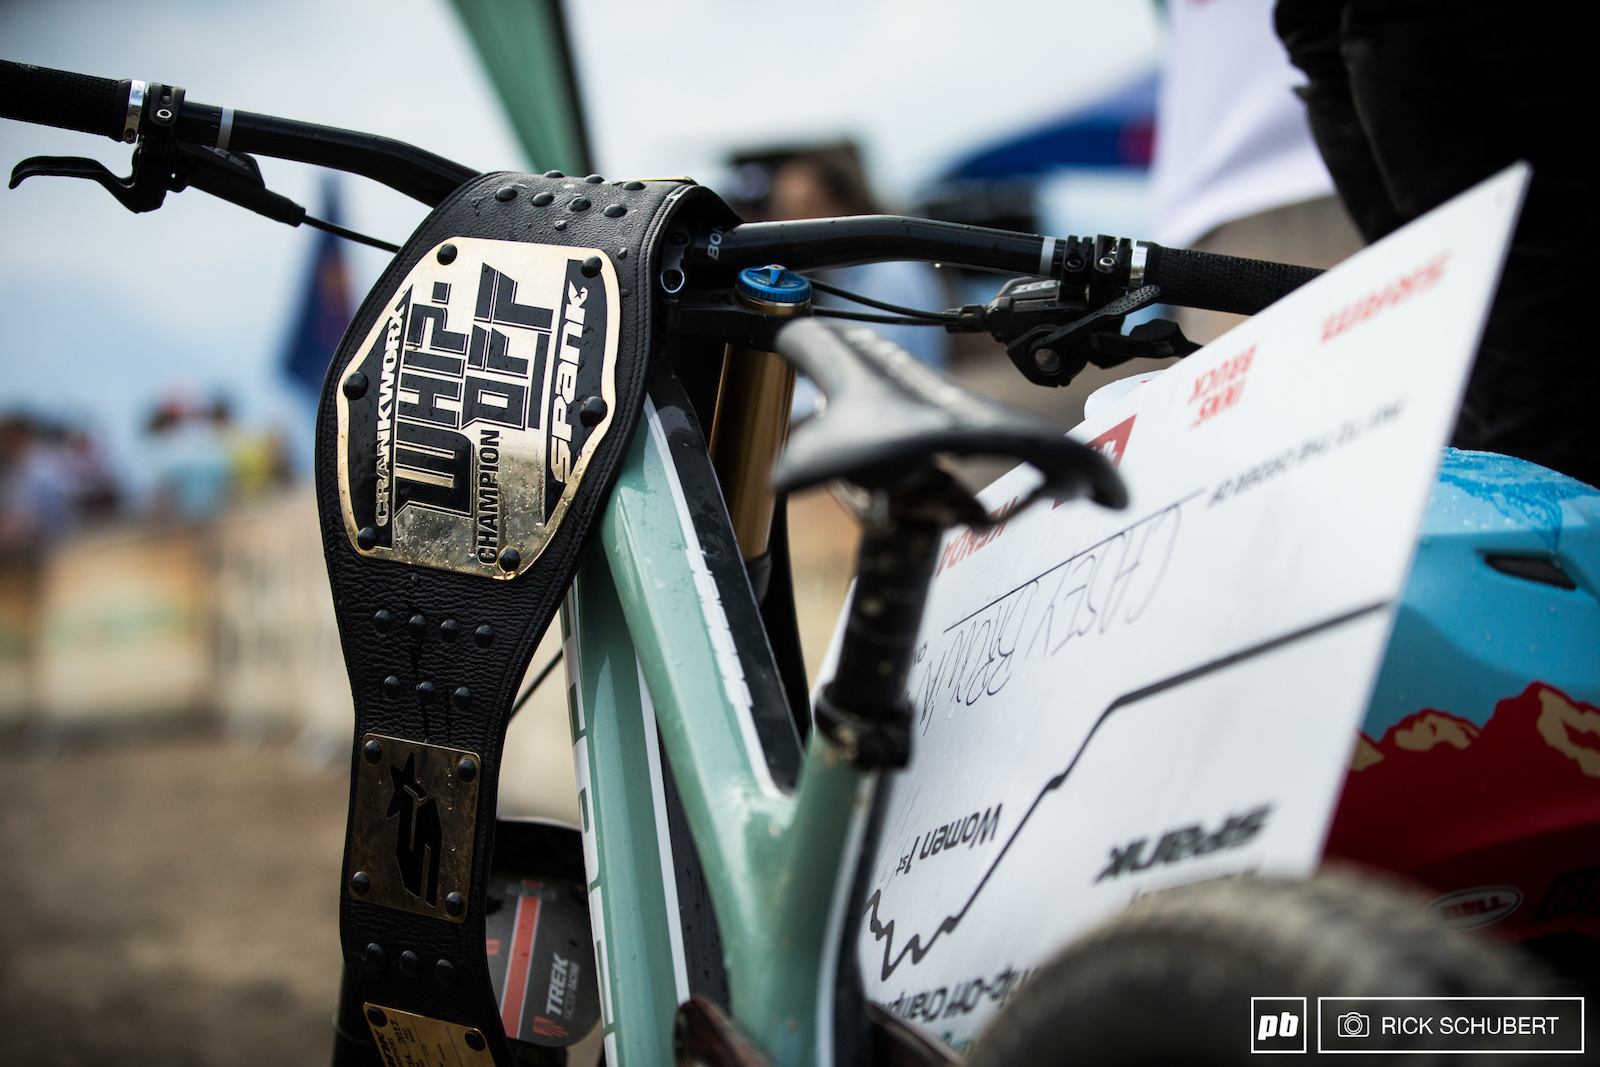 The infamous Crankworx Whip Off belt everyone is bent on